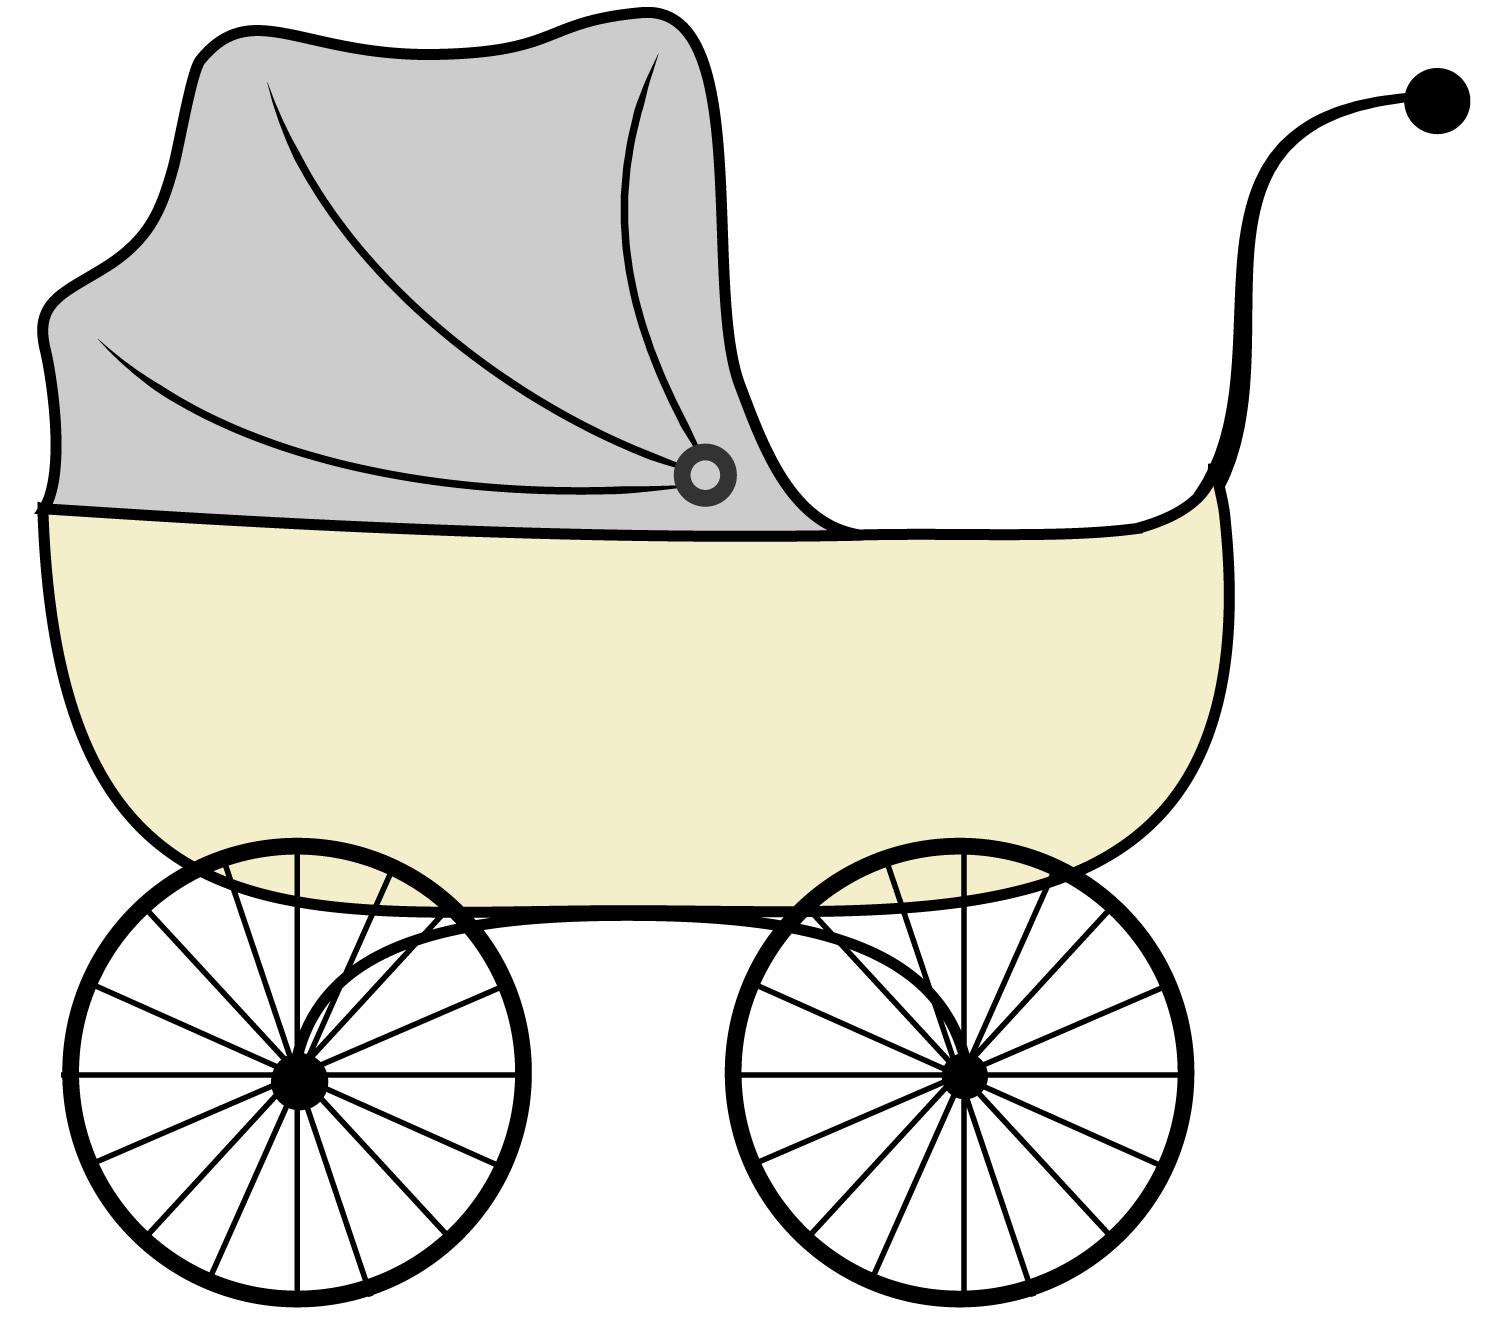 Baby Stroller Clipart Black And White Baby Shower Printables Vintage Stroller Clipart Clipart